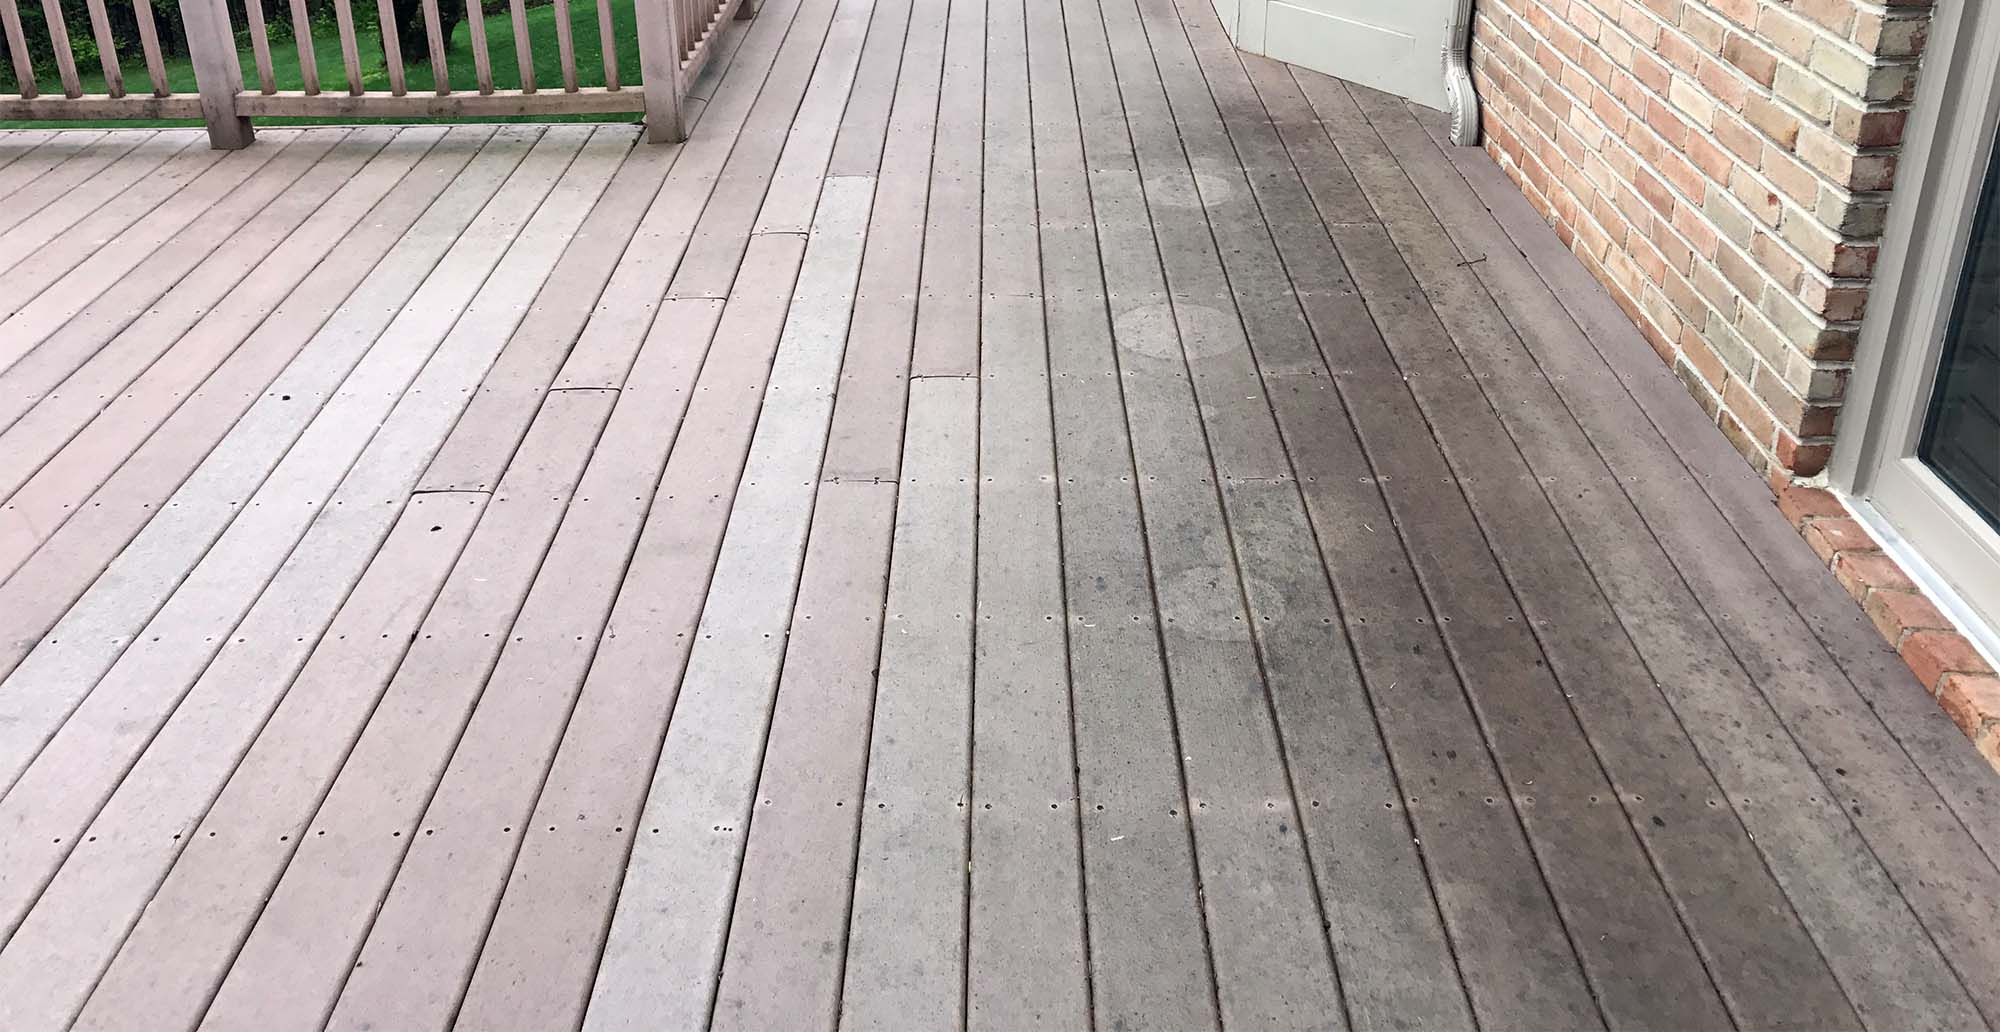 Problems With Trex Decking